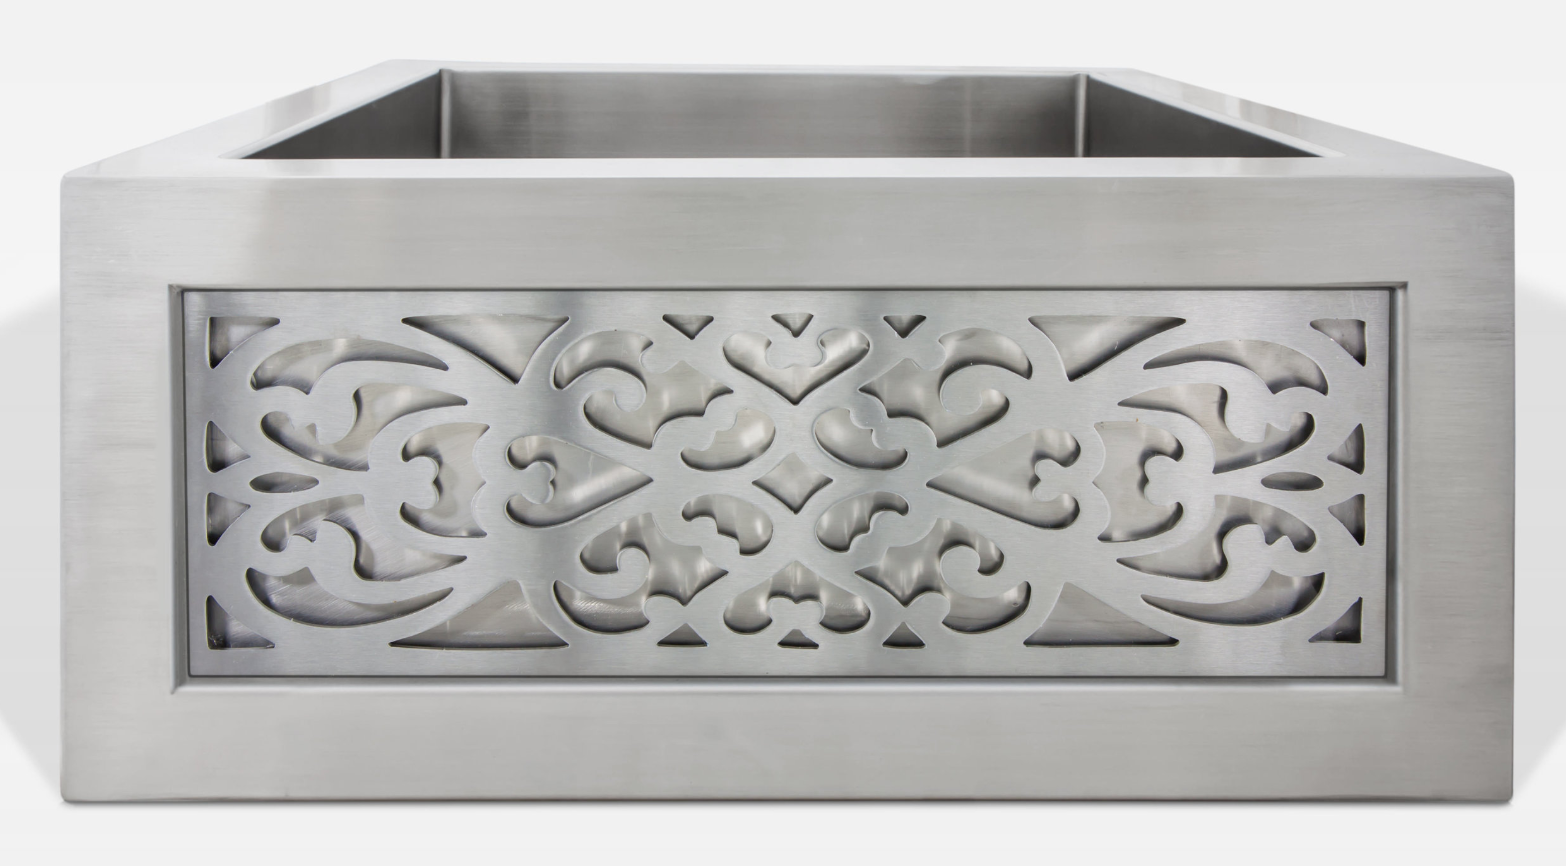 Linkasink Kitchen Farmhouse Sinks - C073-3.5-SS Stainless Steel Inset Apron Front Sink - Smooth Finish PNLS105 Filigree